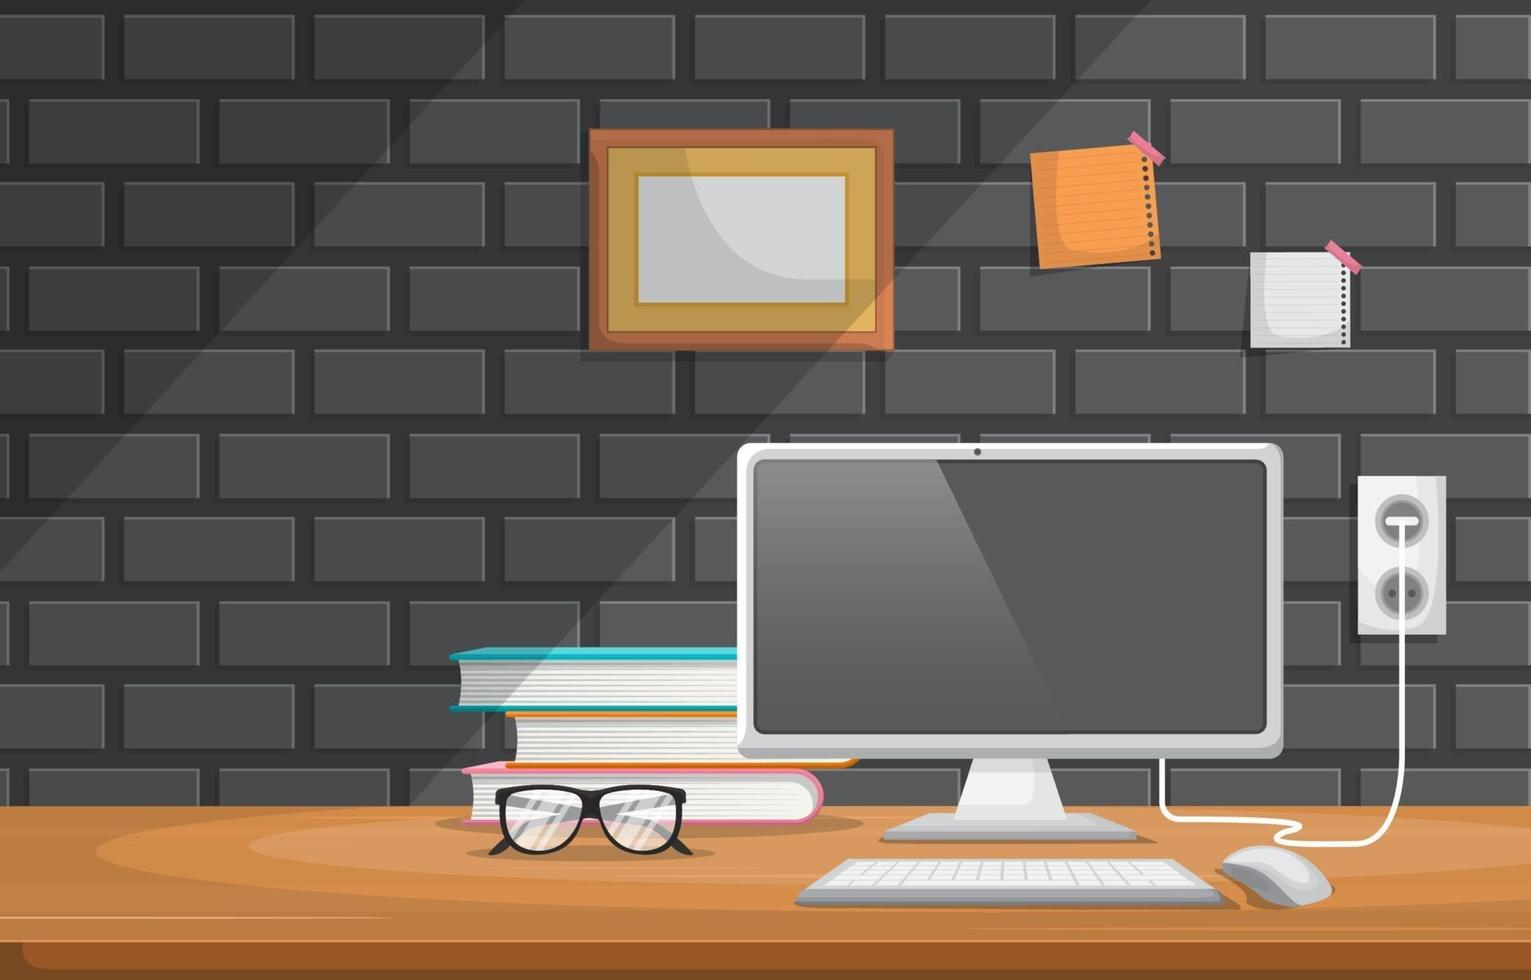 Computer and Eyeglasses on Office Table Illustration vector